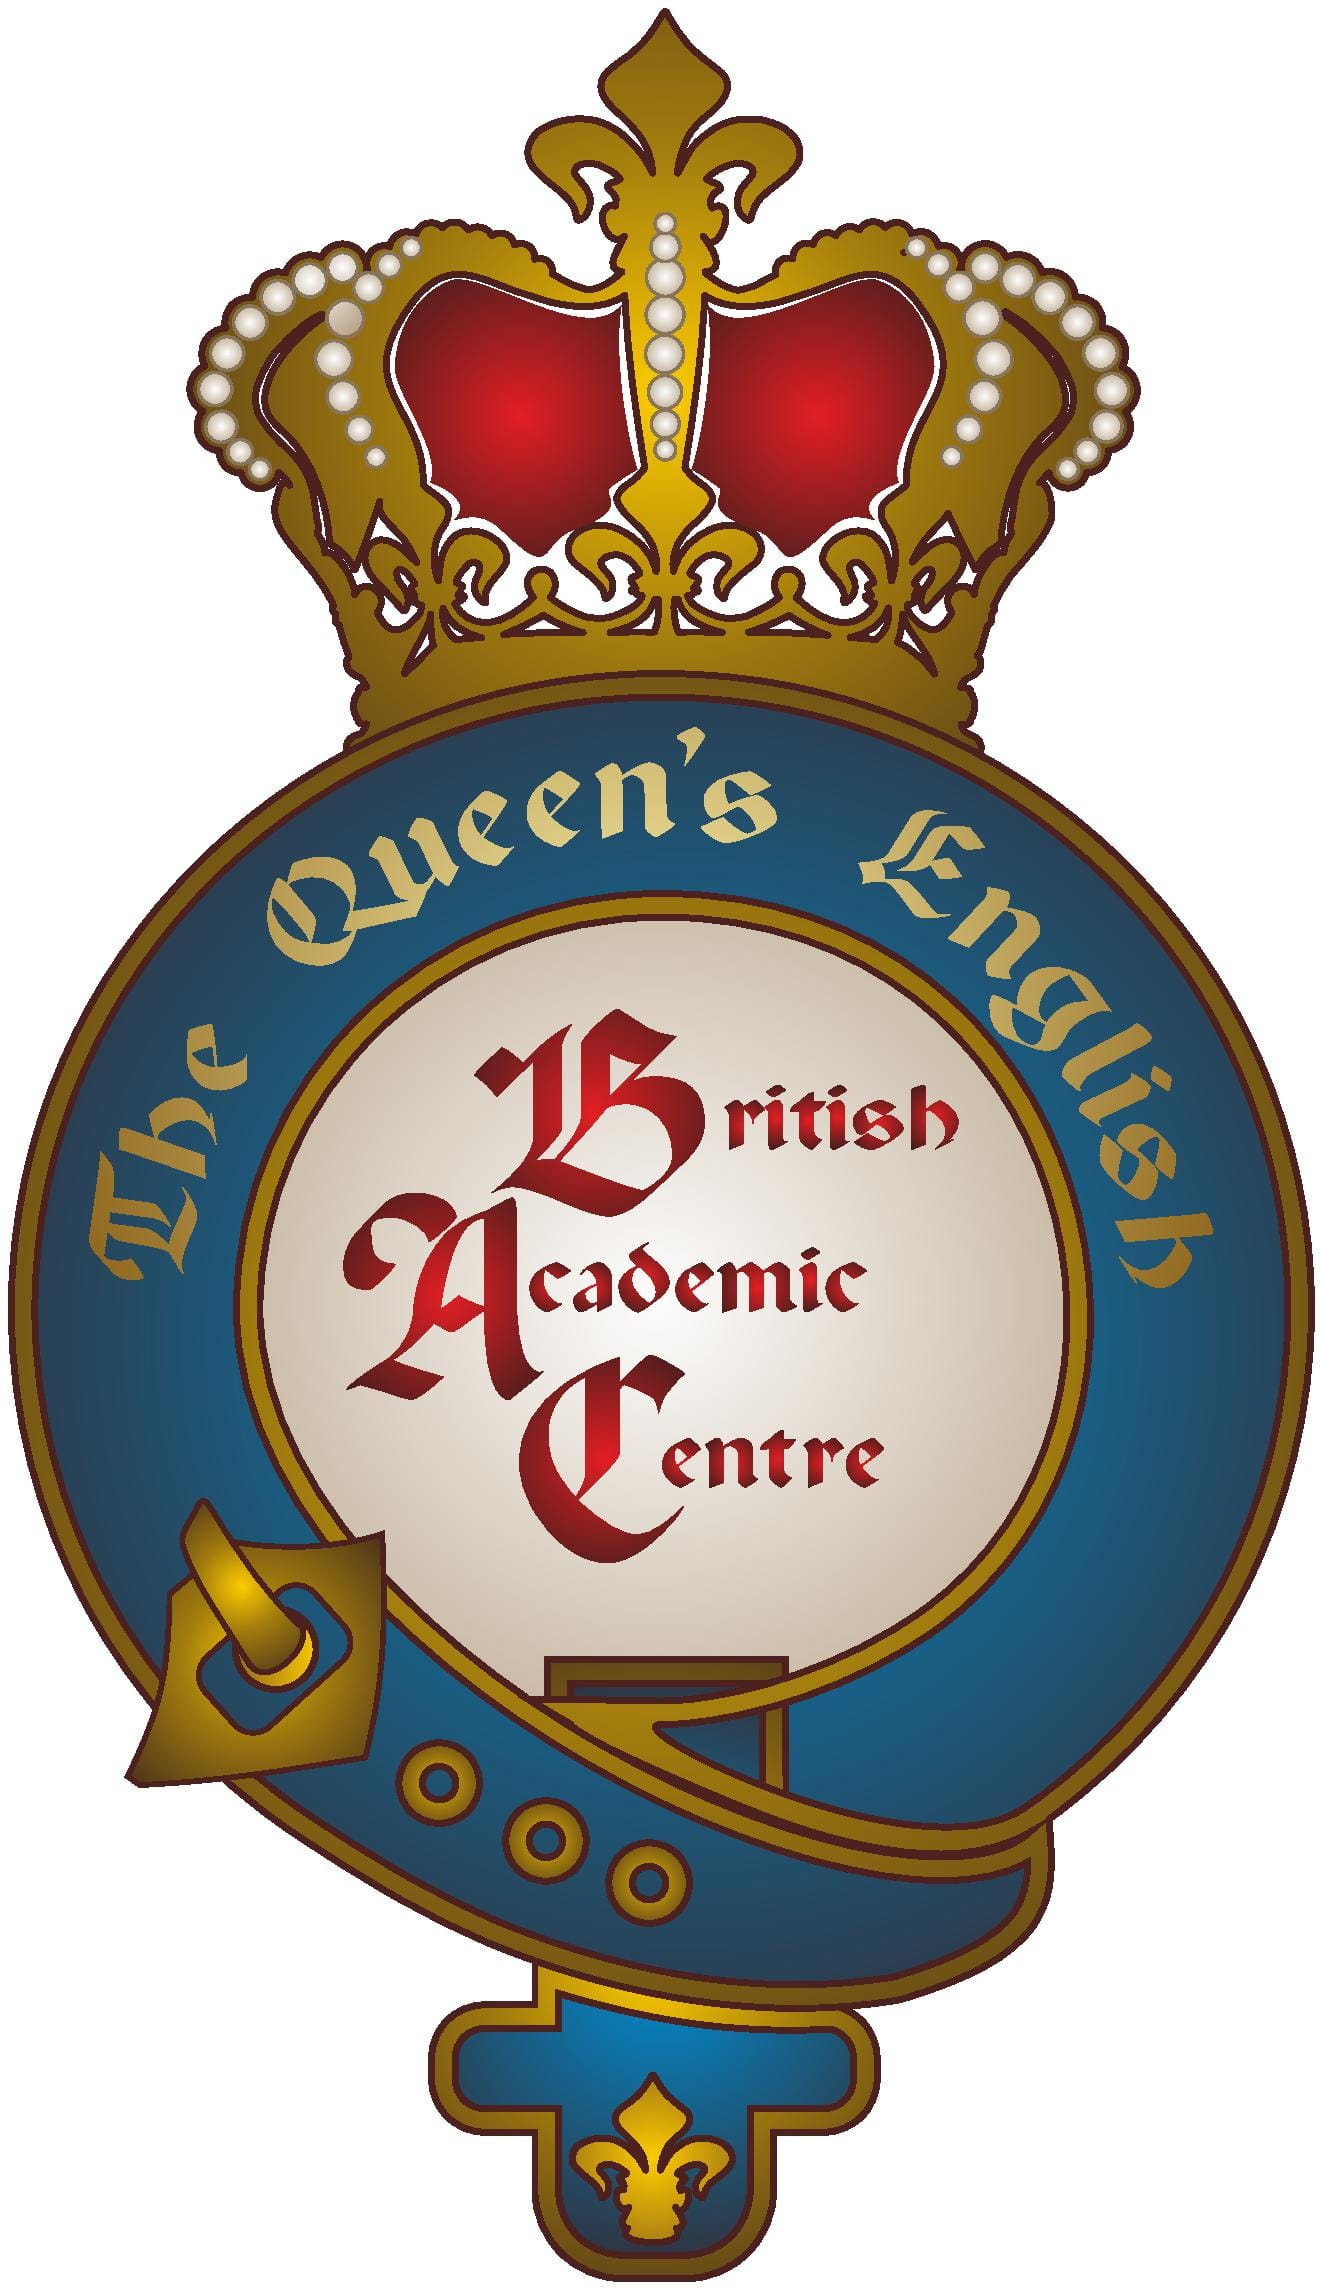 BAC__the queen___logo new.jpg